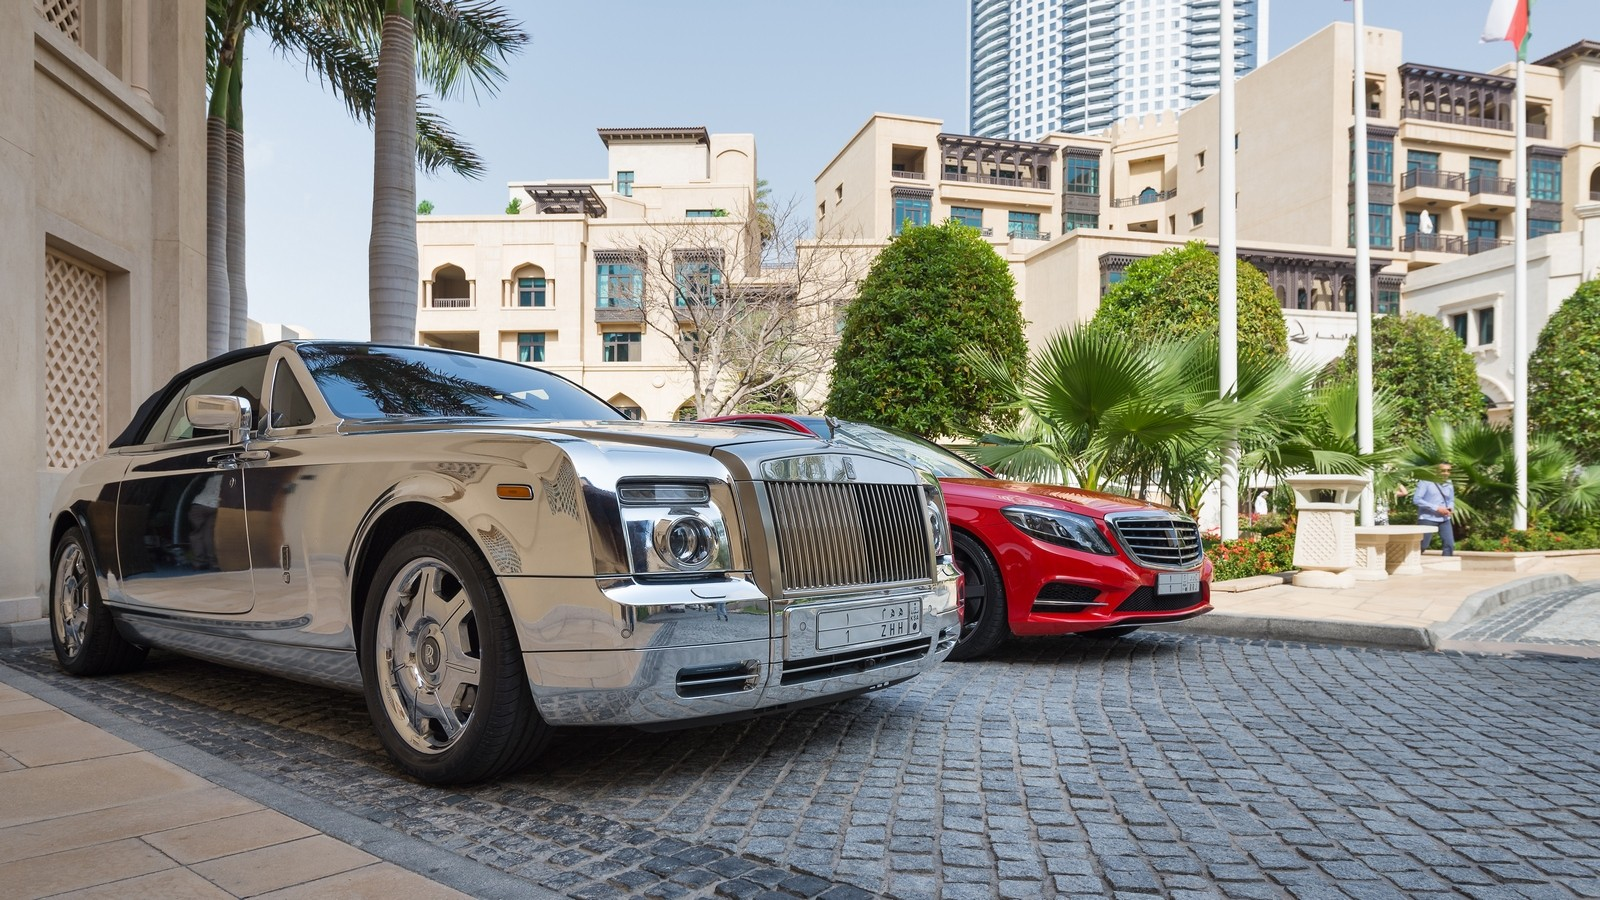 DUBAI, UAE — MARCH 30, 2014: Luxury car parked outside Palace Ho